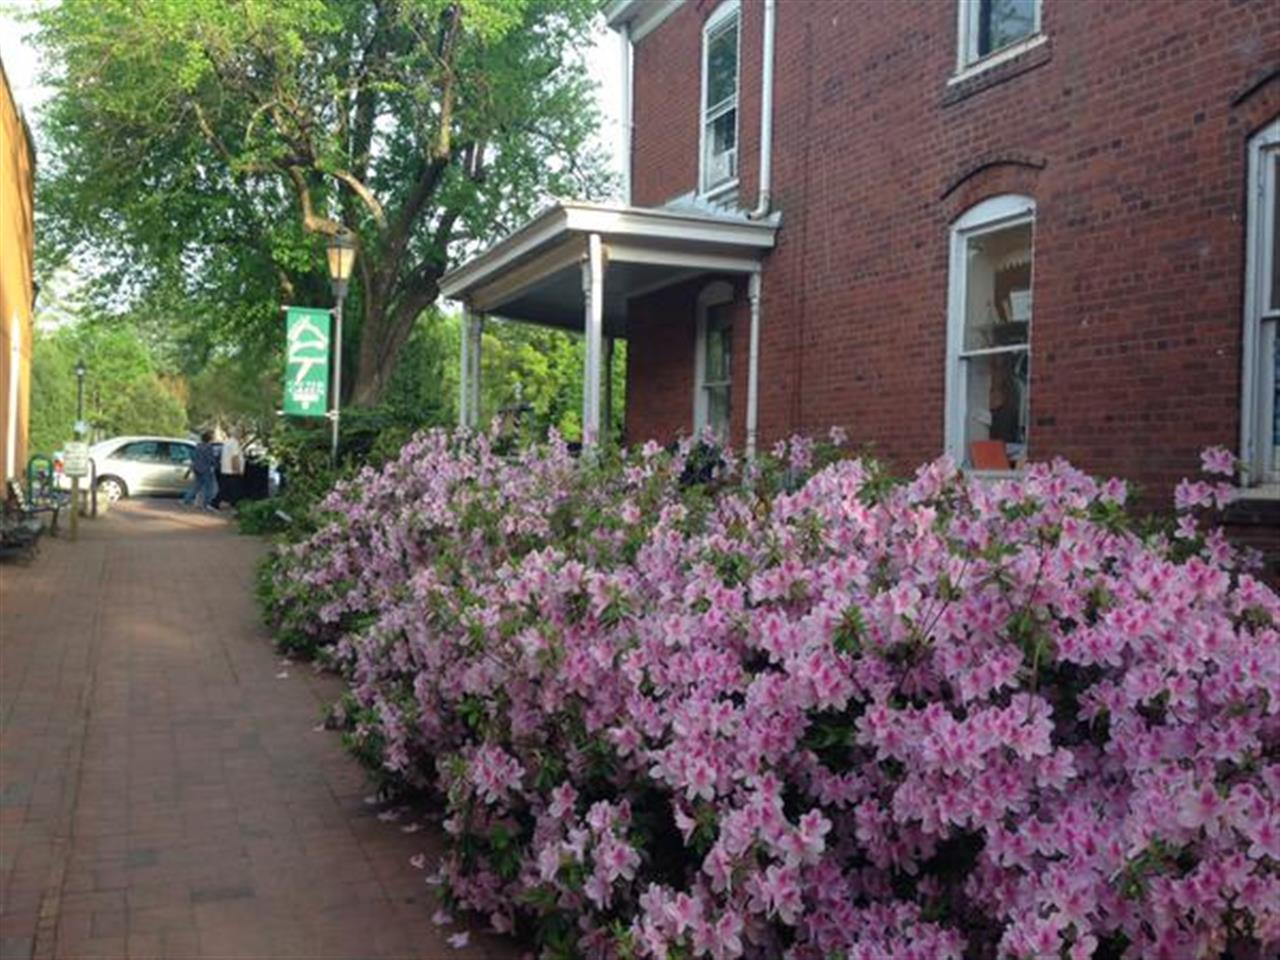 Springtime in downtown Davidson voted the best walkable downtown in America! #LeadingRELocal #LakeNorman #DavidsonNC